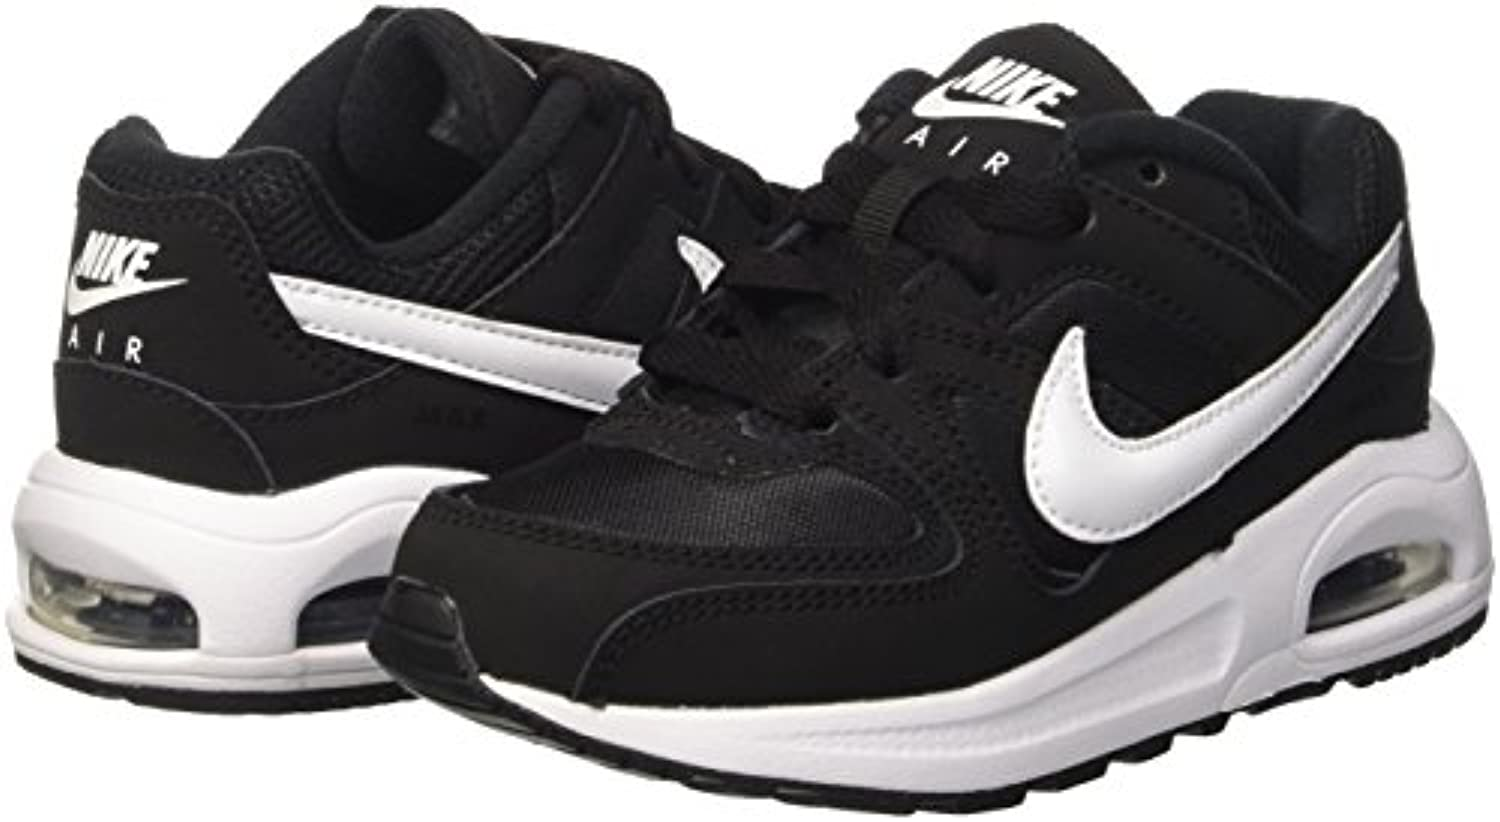 Nike Boys' Air Max Command Flex (Ps) Trainers black Size: 1 UK